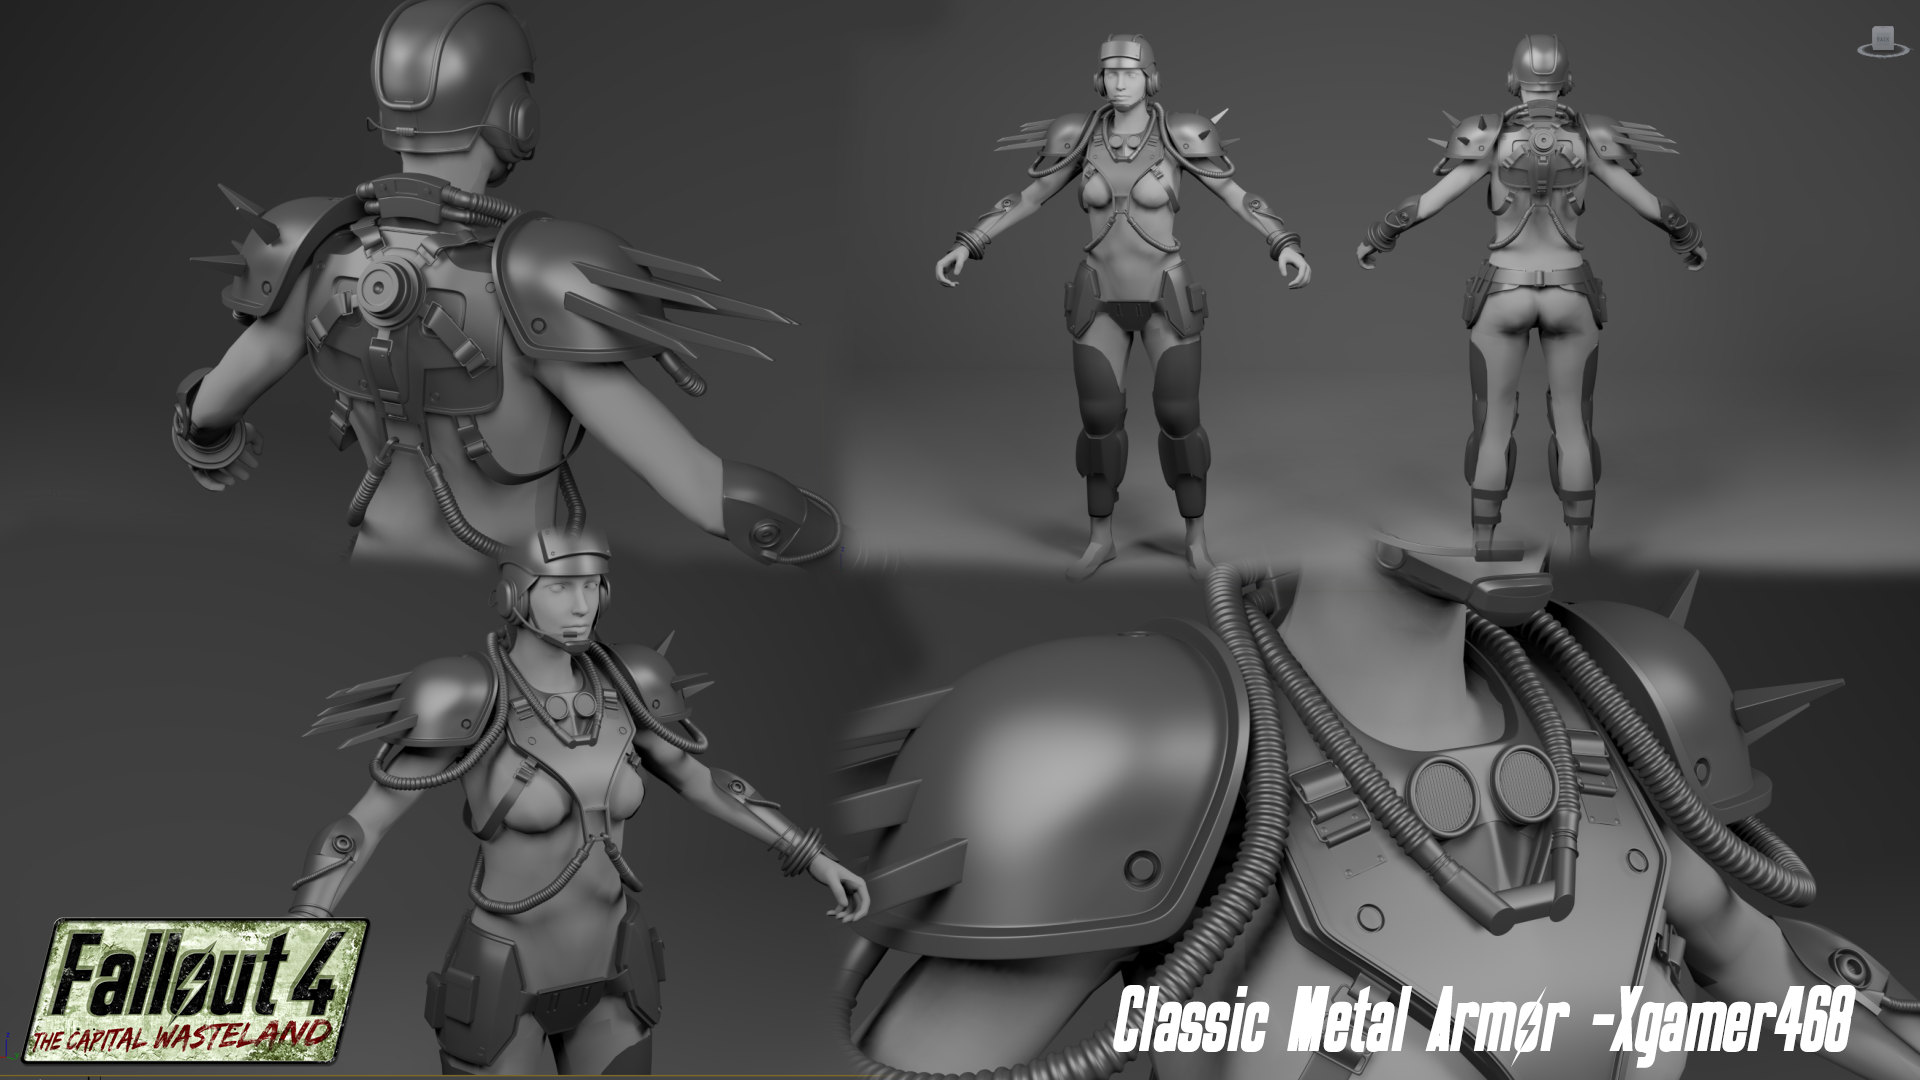 XGamer is still dilligently chipping away at the fine details for the FO3 Metal Armor set.